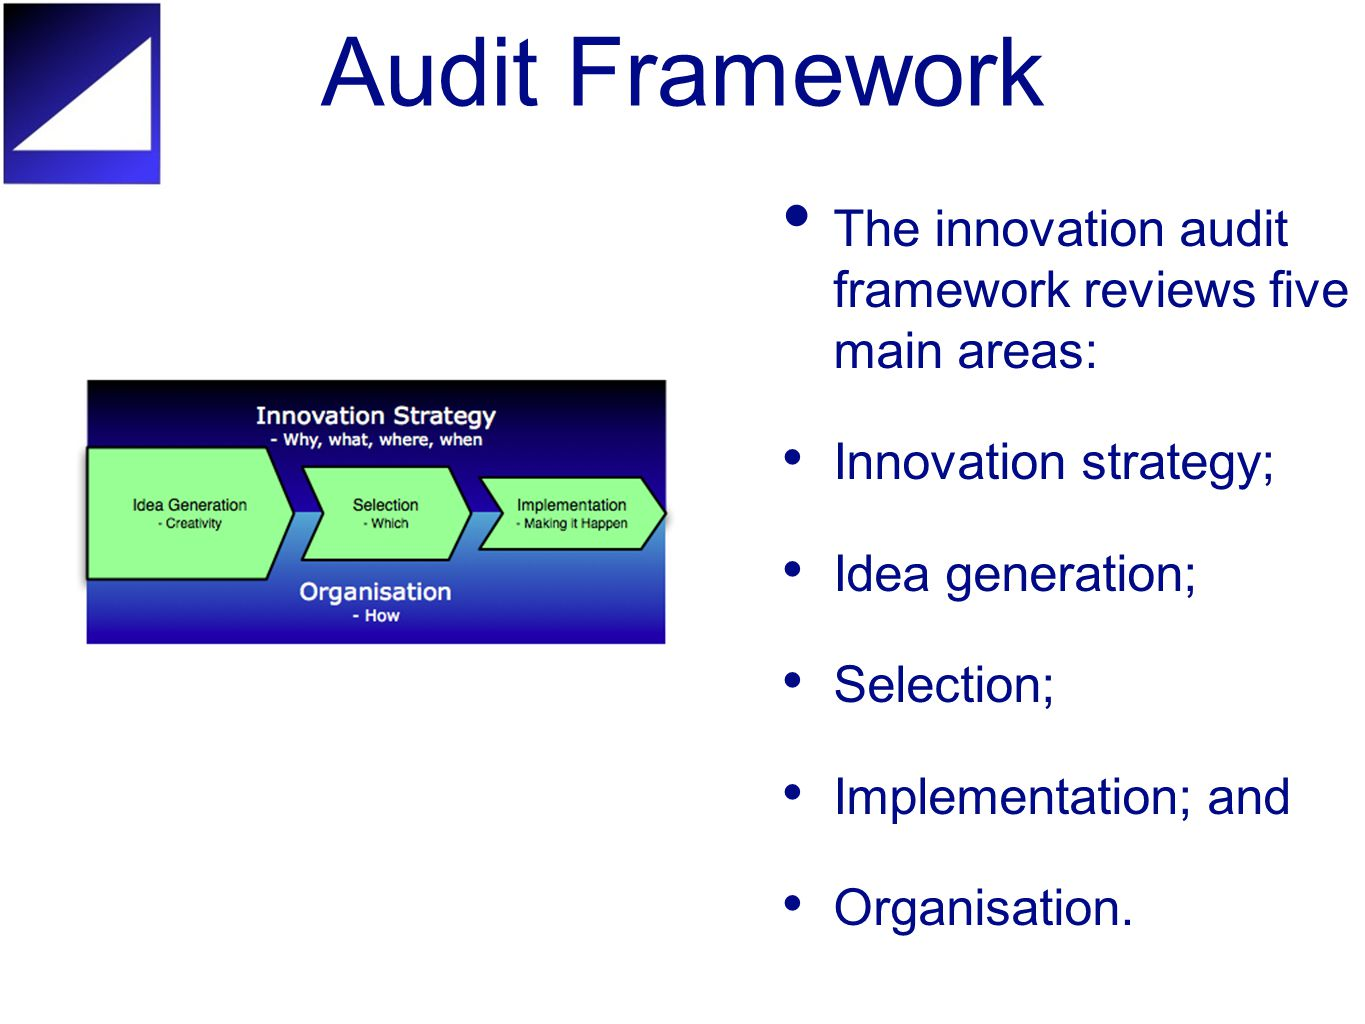 Audit Framework The innovation audit framework reviews five main areas: Innovation strategy; Idea generation; Selection; Implementation; and Organisation.